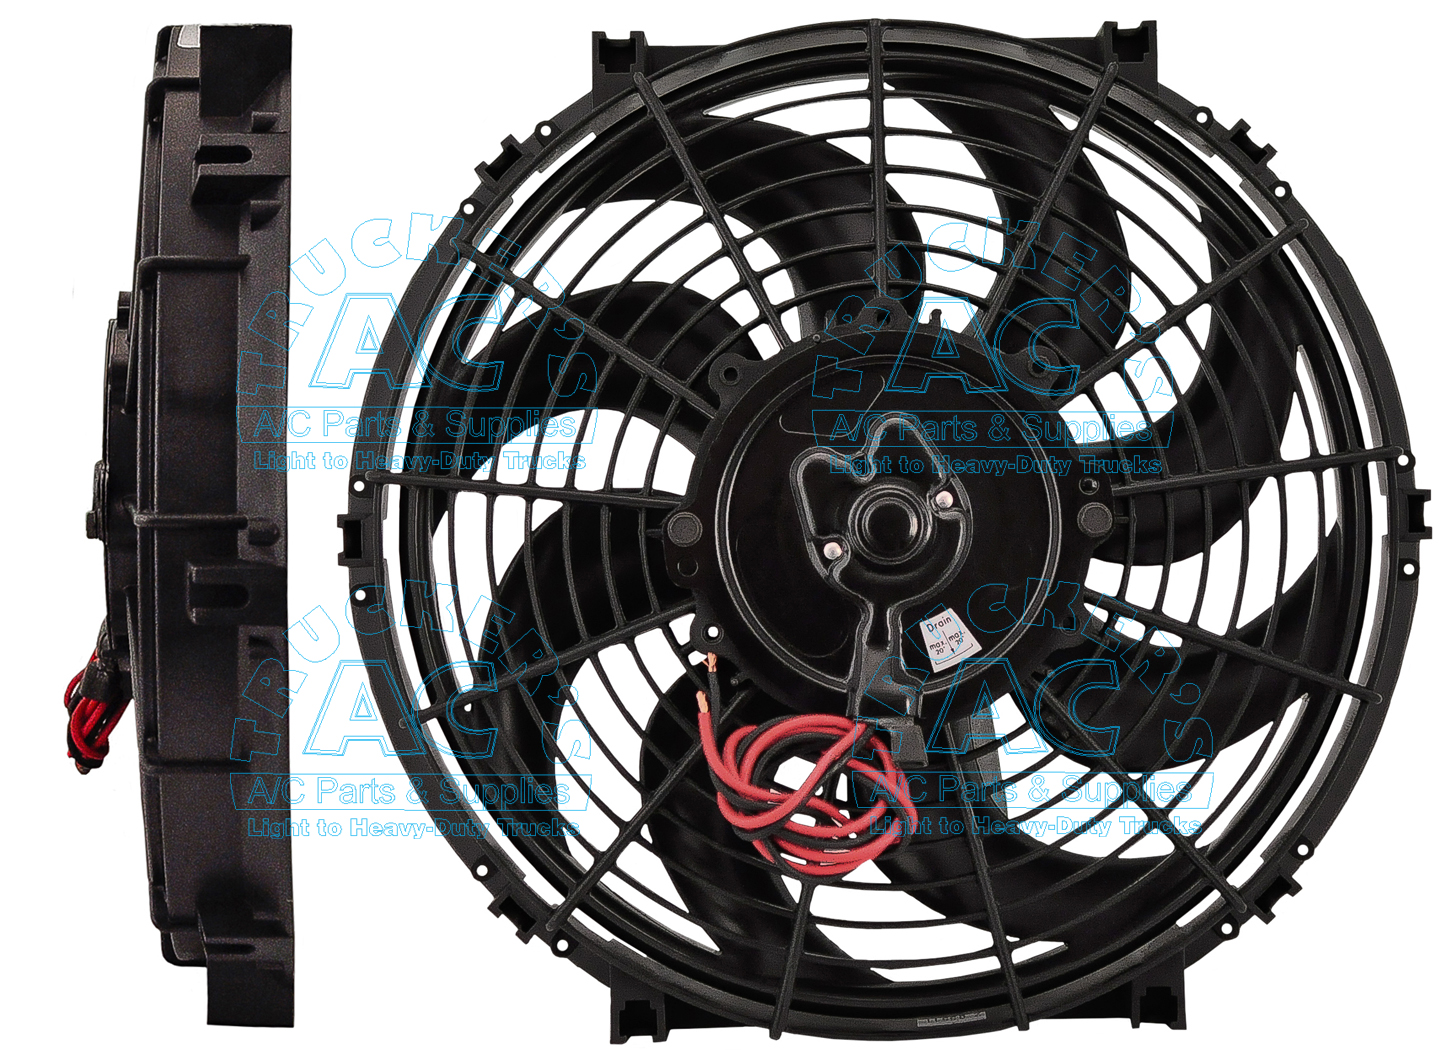 Tripac Cooling Fan Embly Aftermarket 73r 8524 Oem Rd5 7250 3